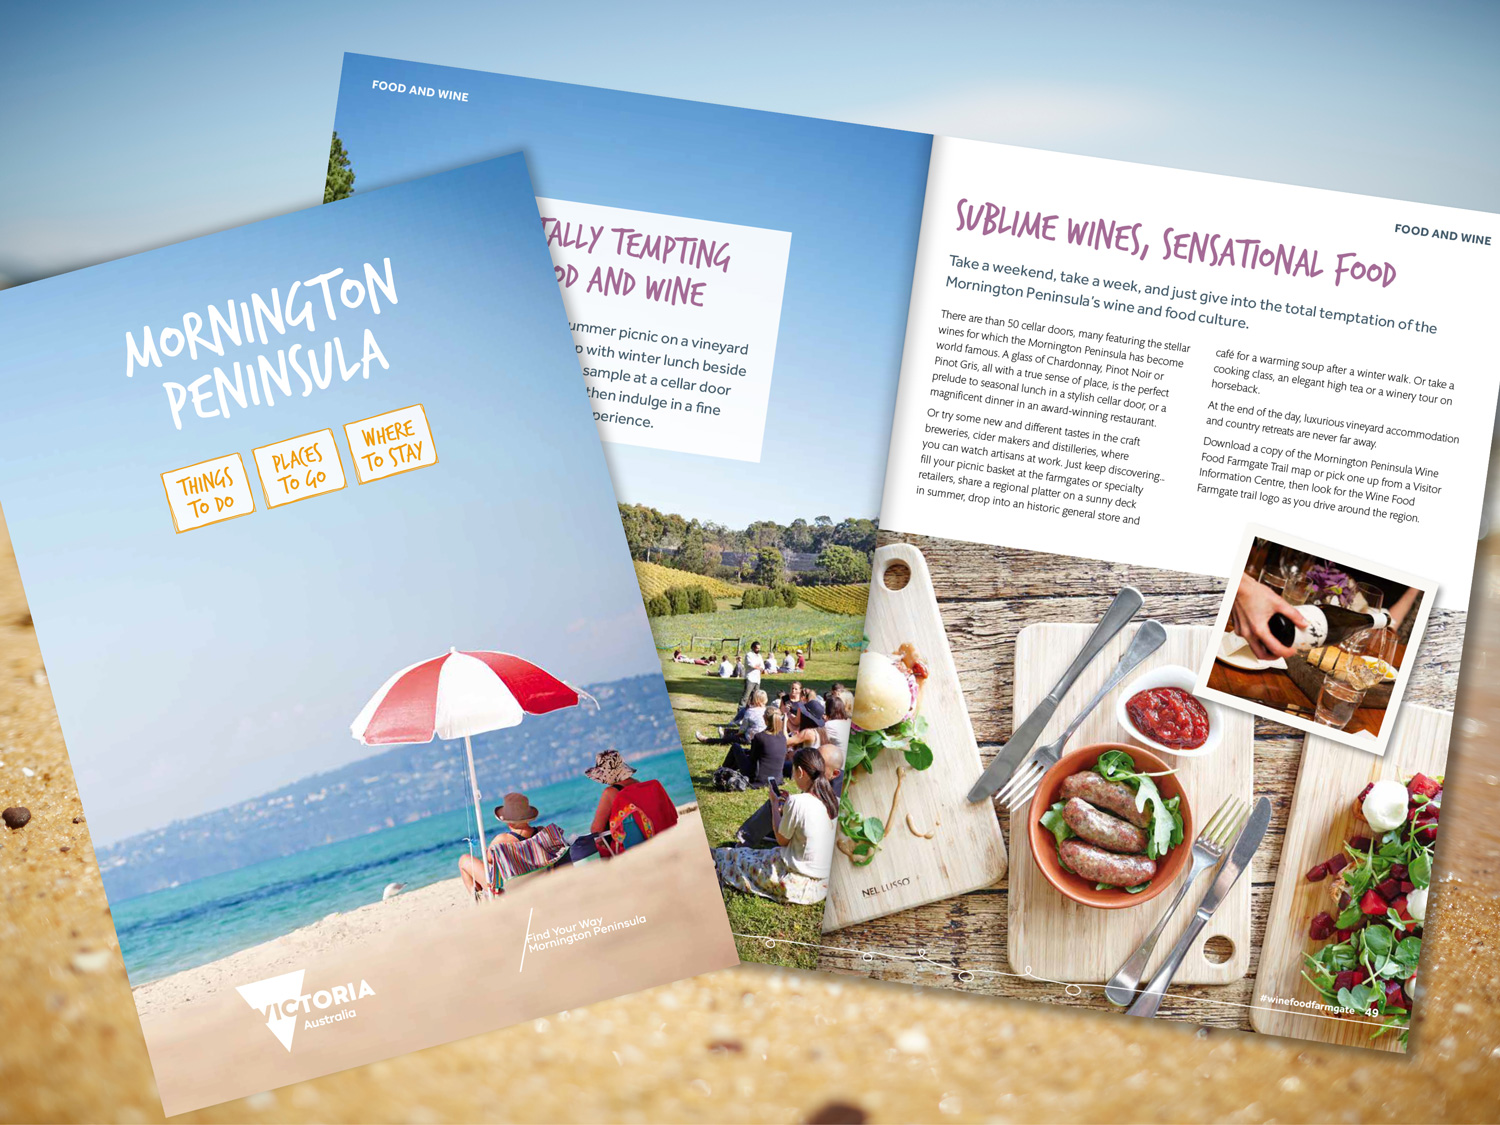 Mornington Peninsula Official Visitors Guide 2016